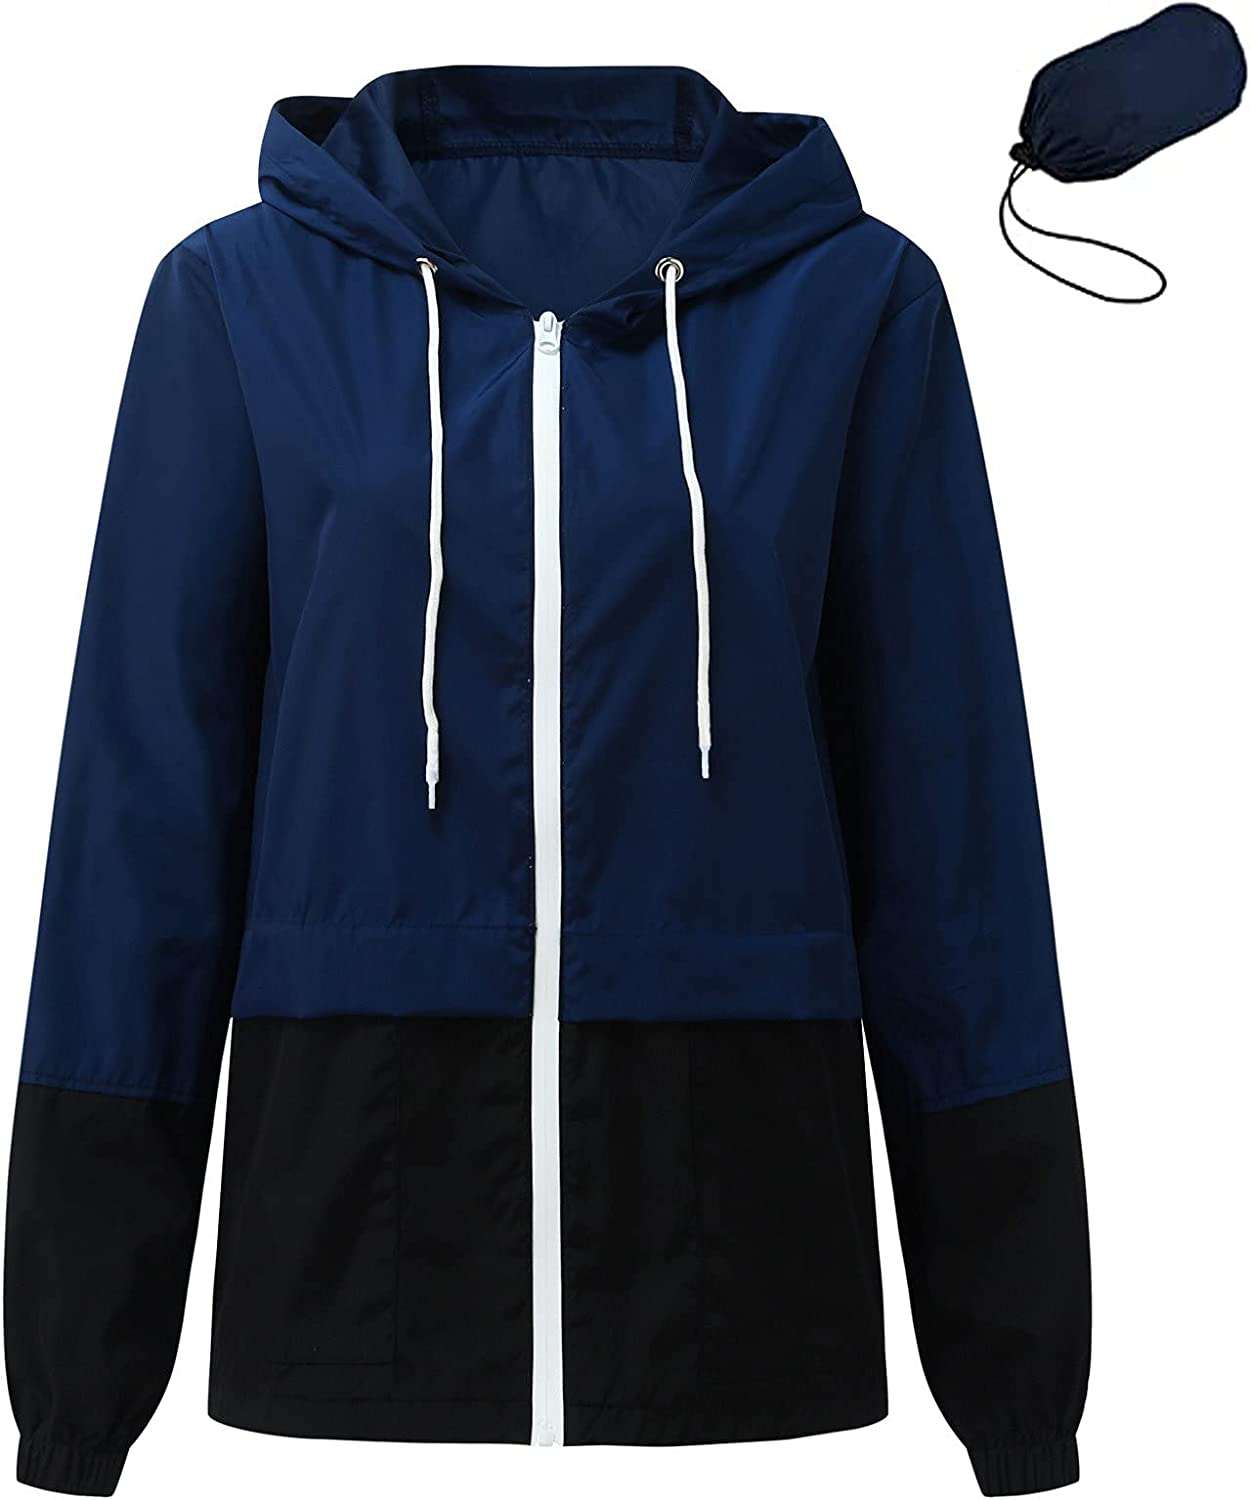 Womens Lightweight Thin Zip-Up Hoodie Jacket Casual Sport Coat with Plus Size